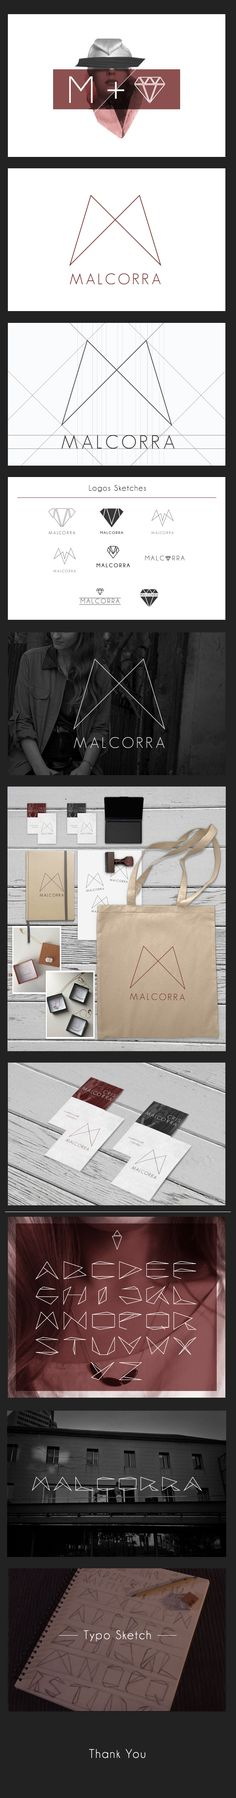 Yonathan Tanu, Spain – Malcorra, identity for independent jewlery designer Cris Malcorra